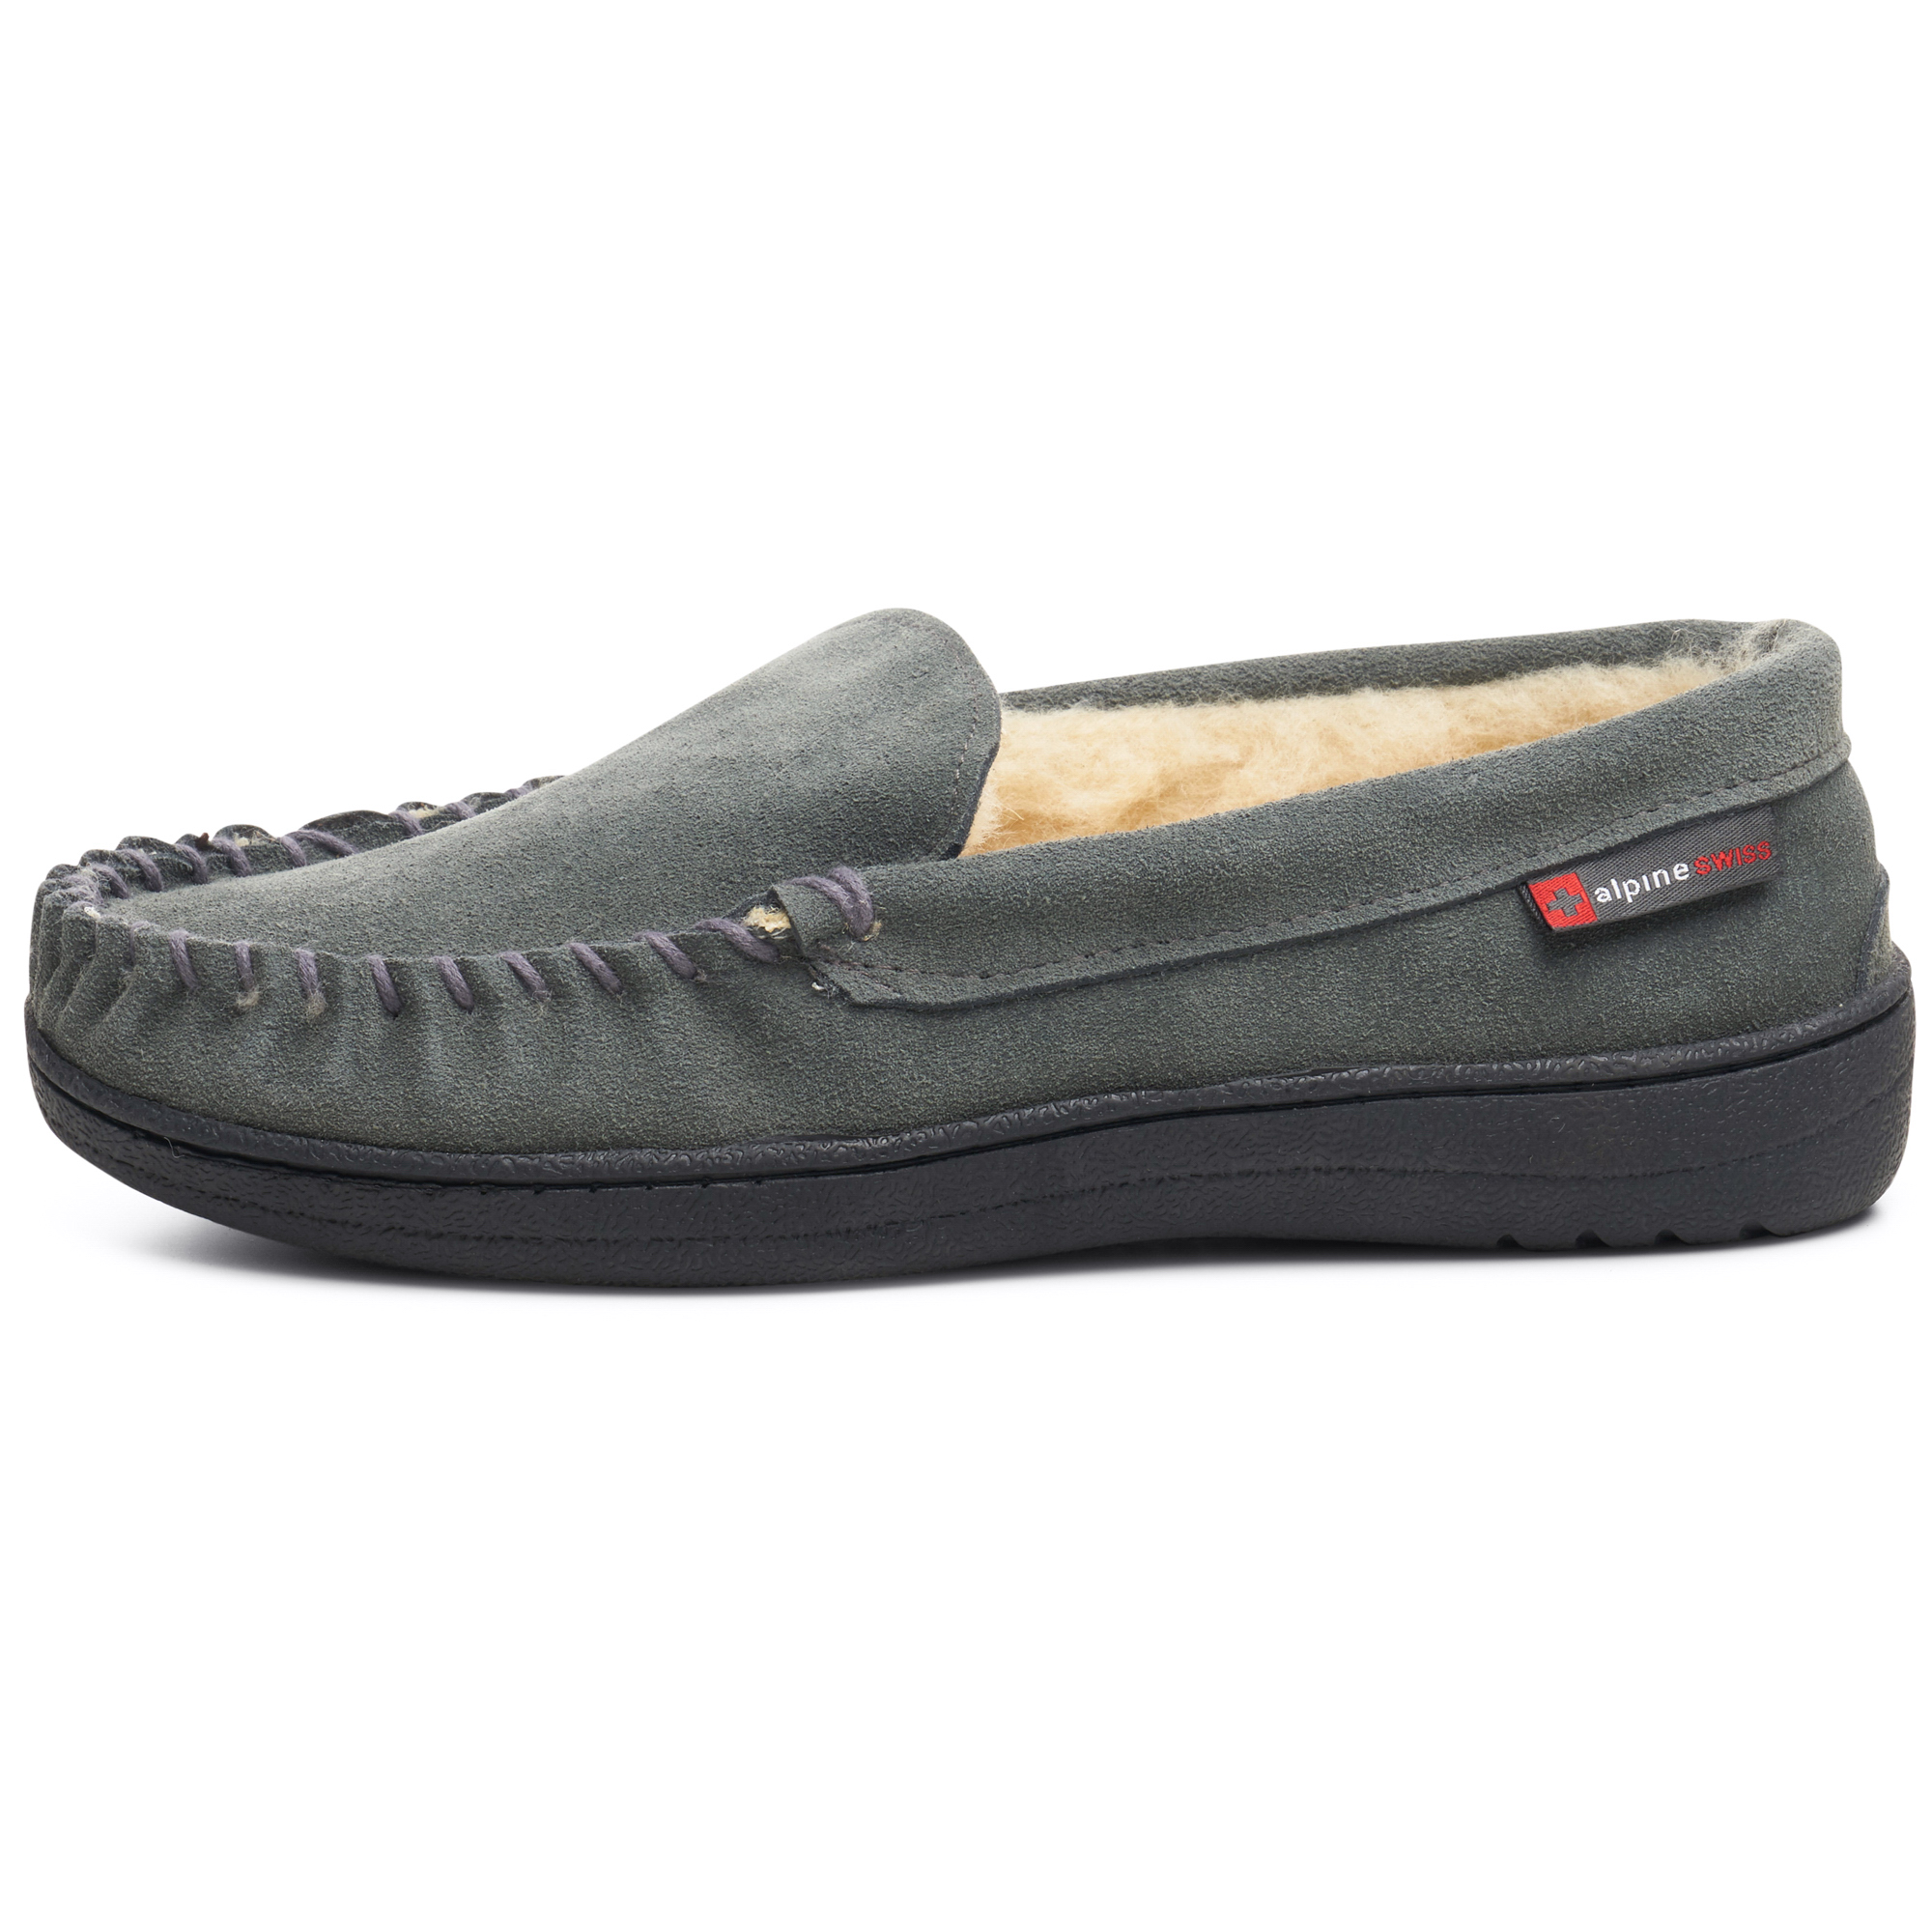 Alpine-Swiss-Yukon-Mens-Suede-Shearling-Moccasin-Slippers-Moc-Toe-Slip-On-Shoes thumbnail 29